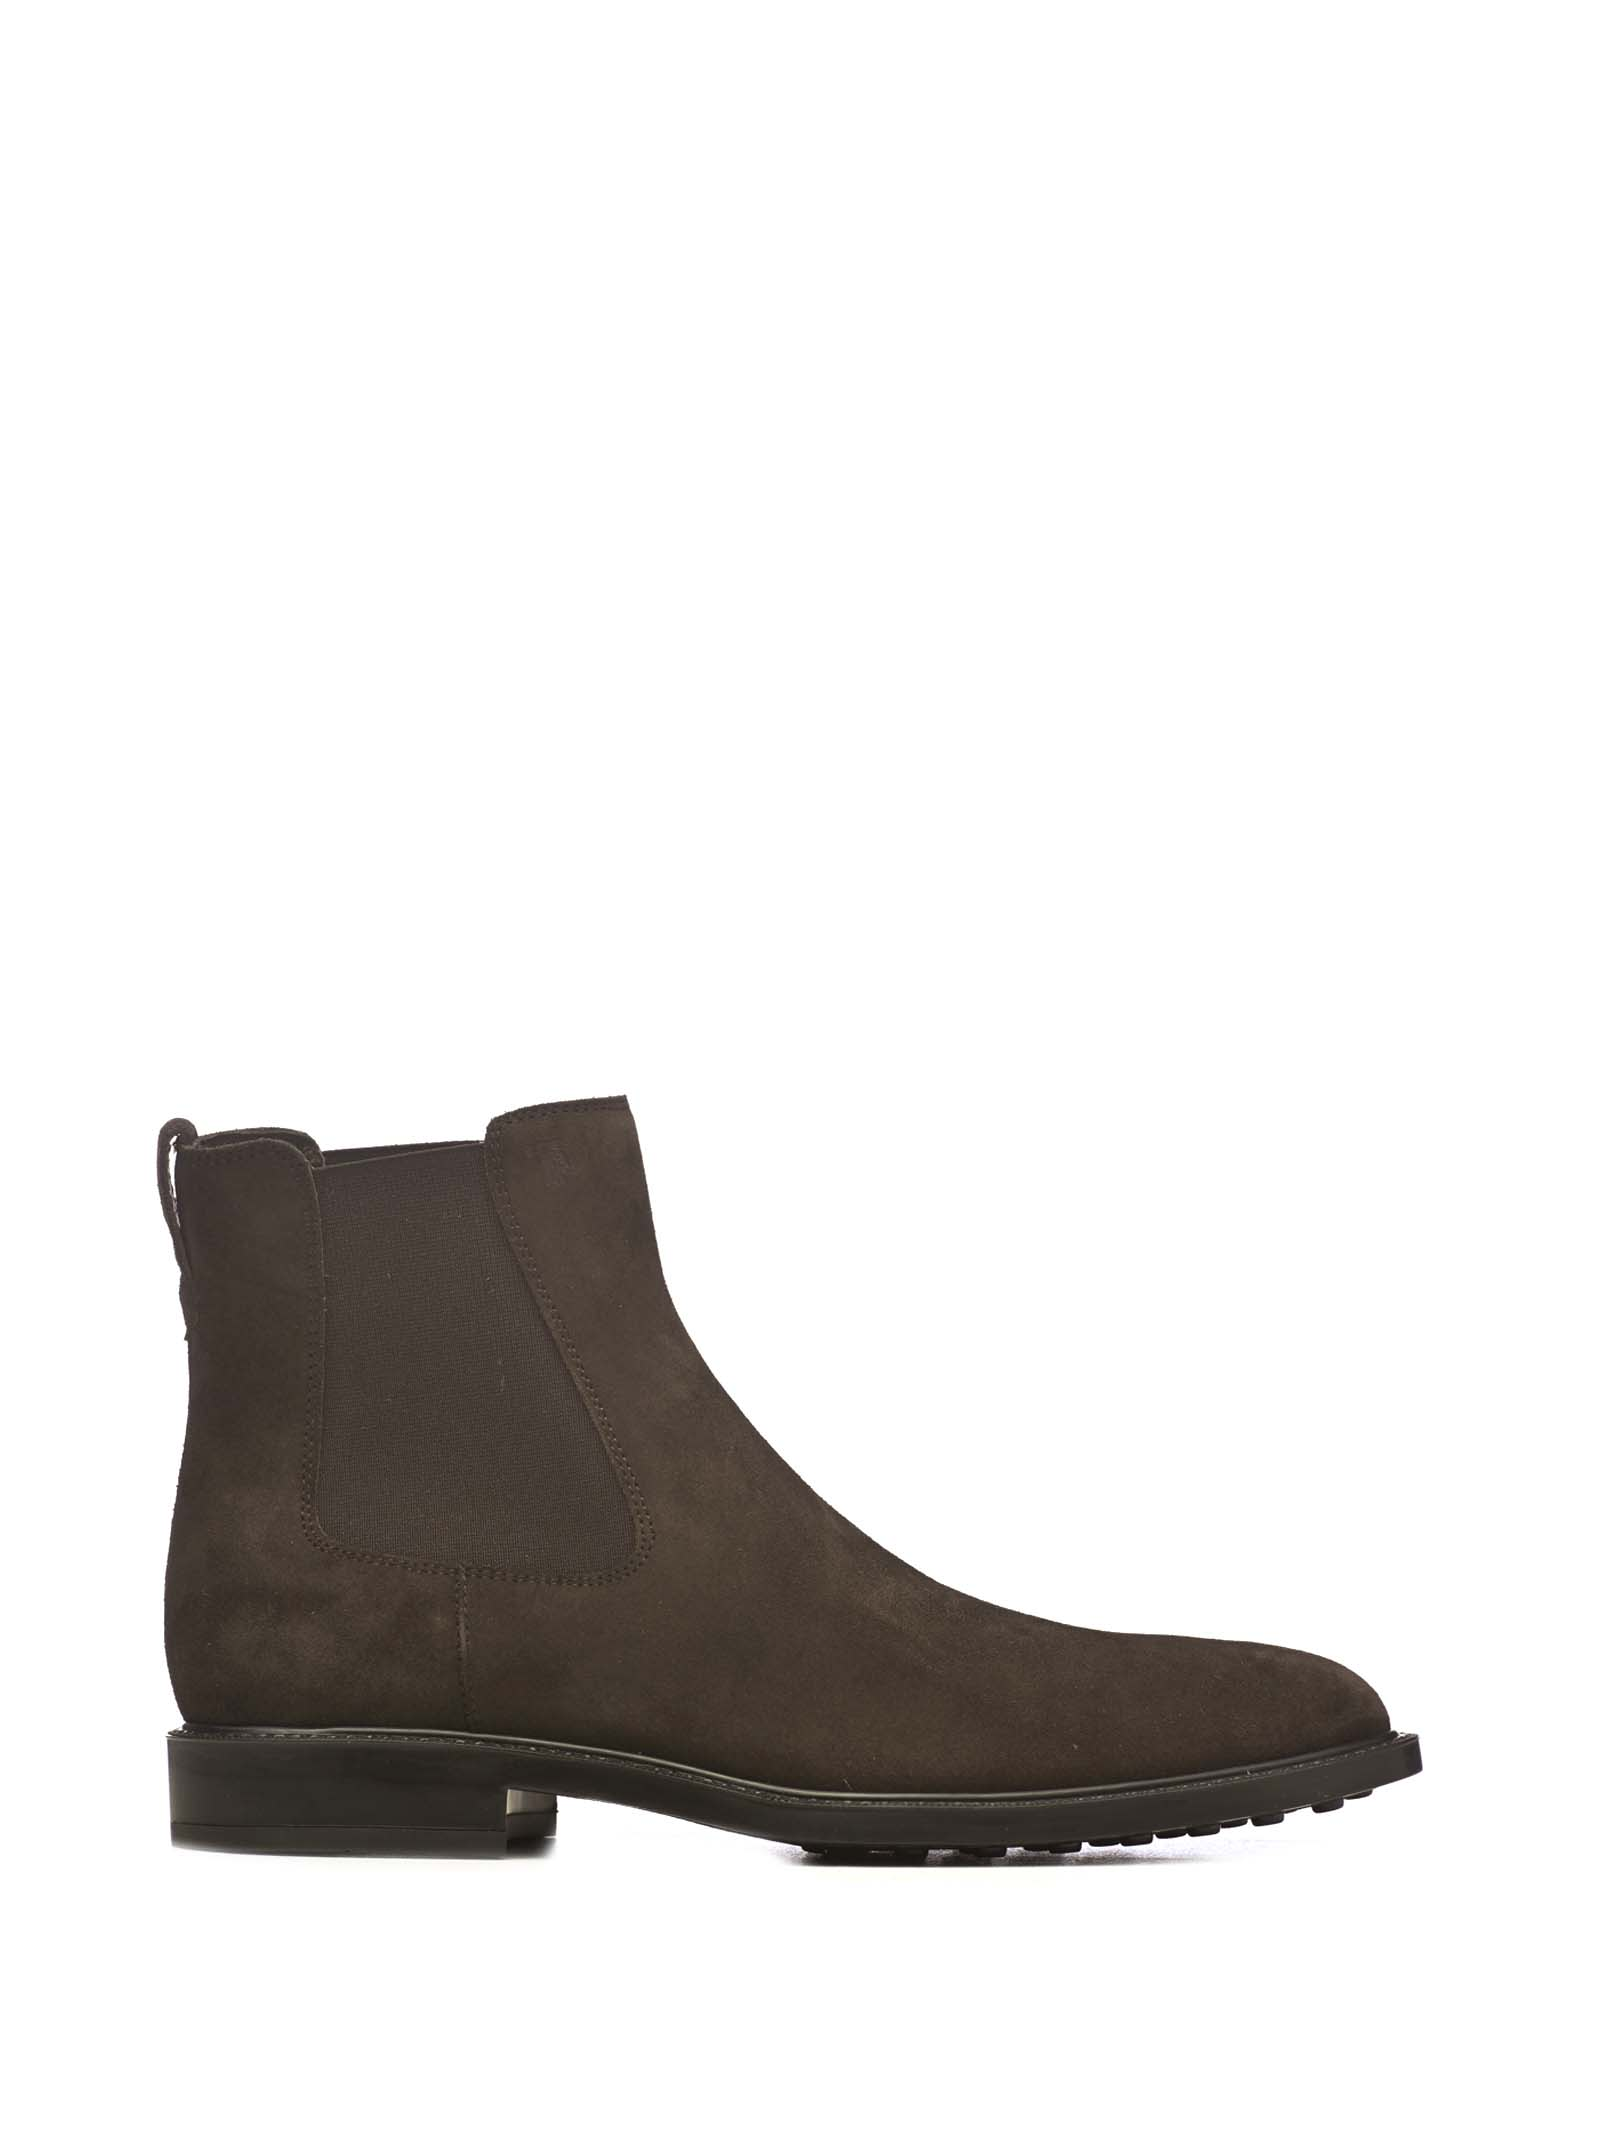 Tods Tods Chelsea Suede Boots